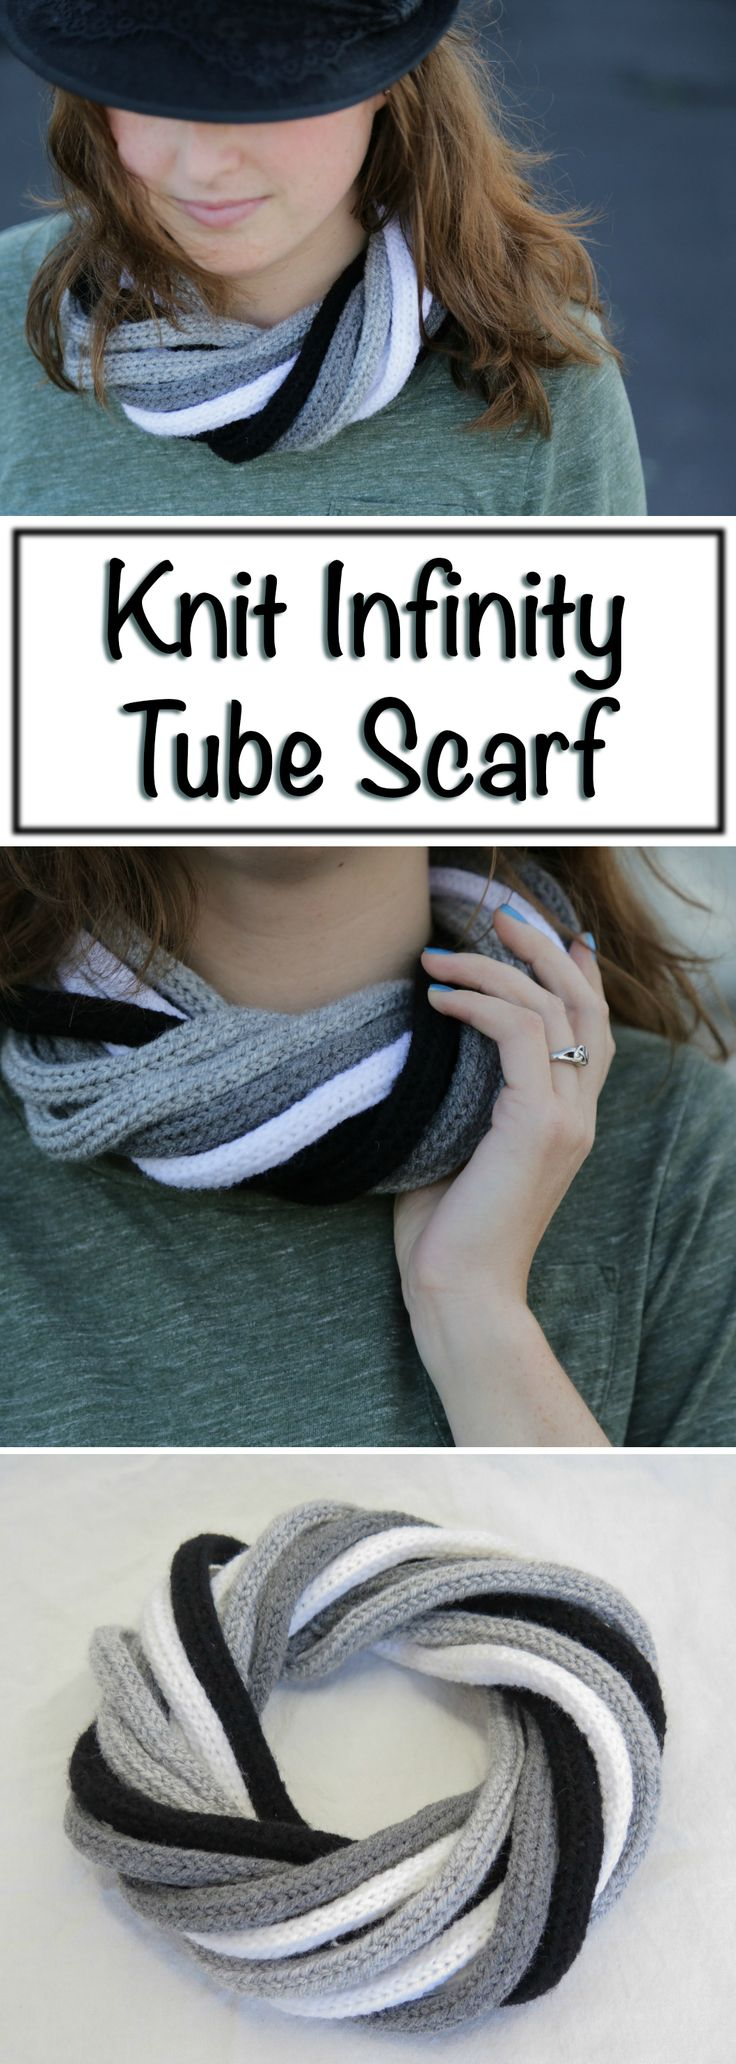 This cool-looking möbius scarf is actually made up of 12 two-foot tubes.